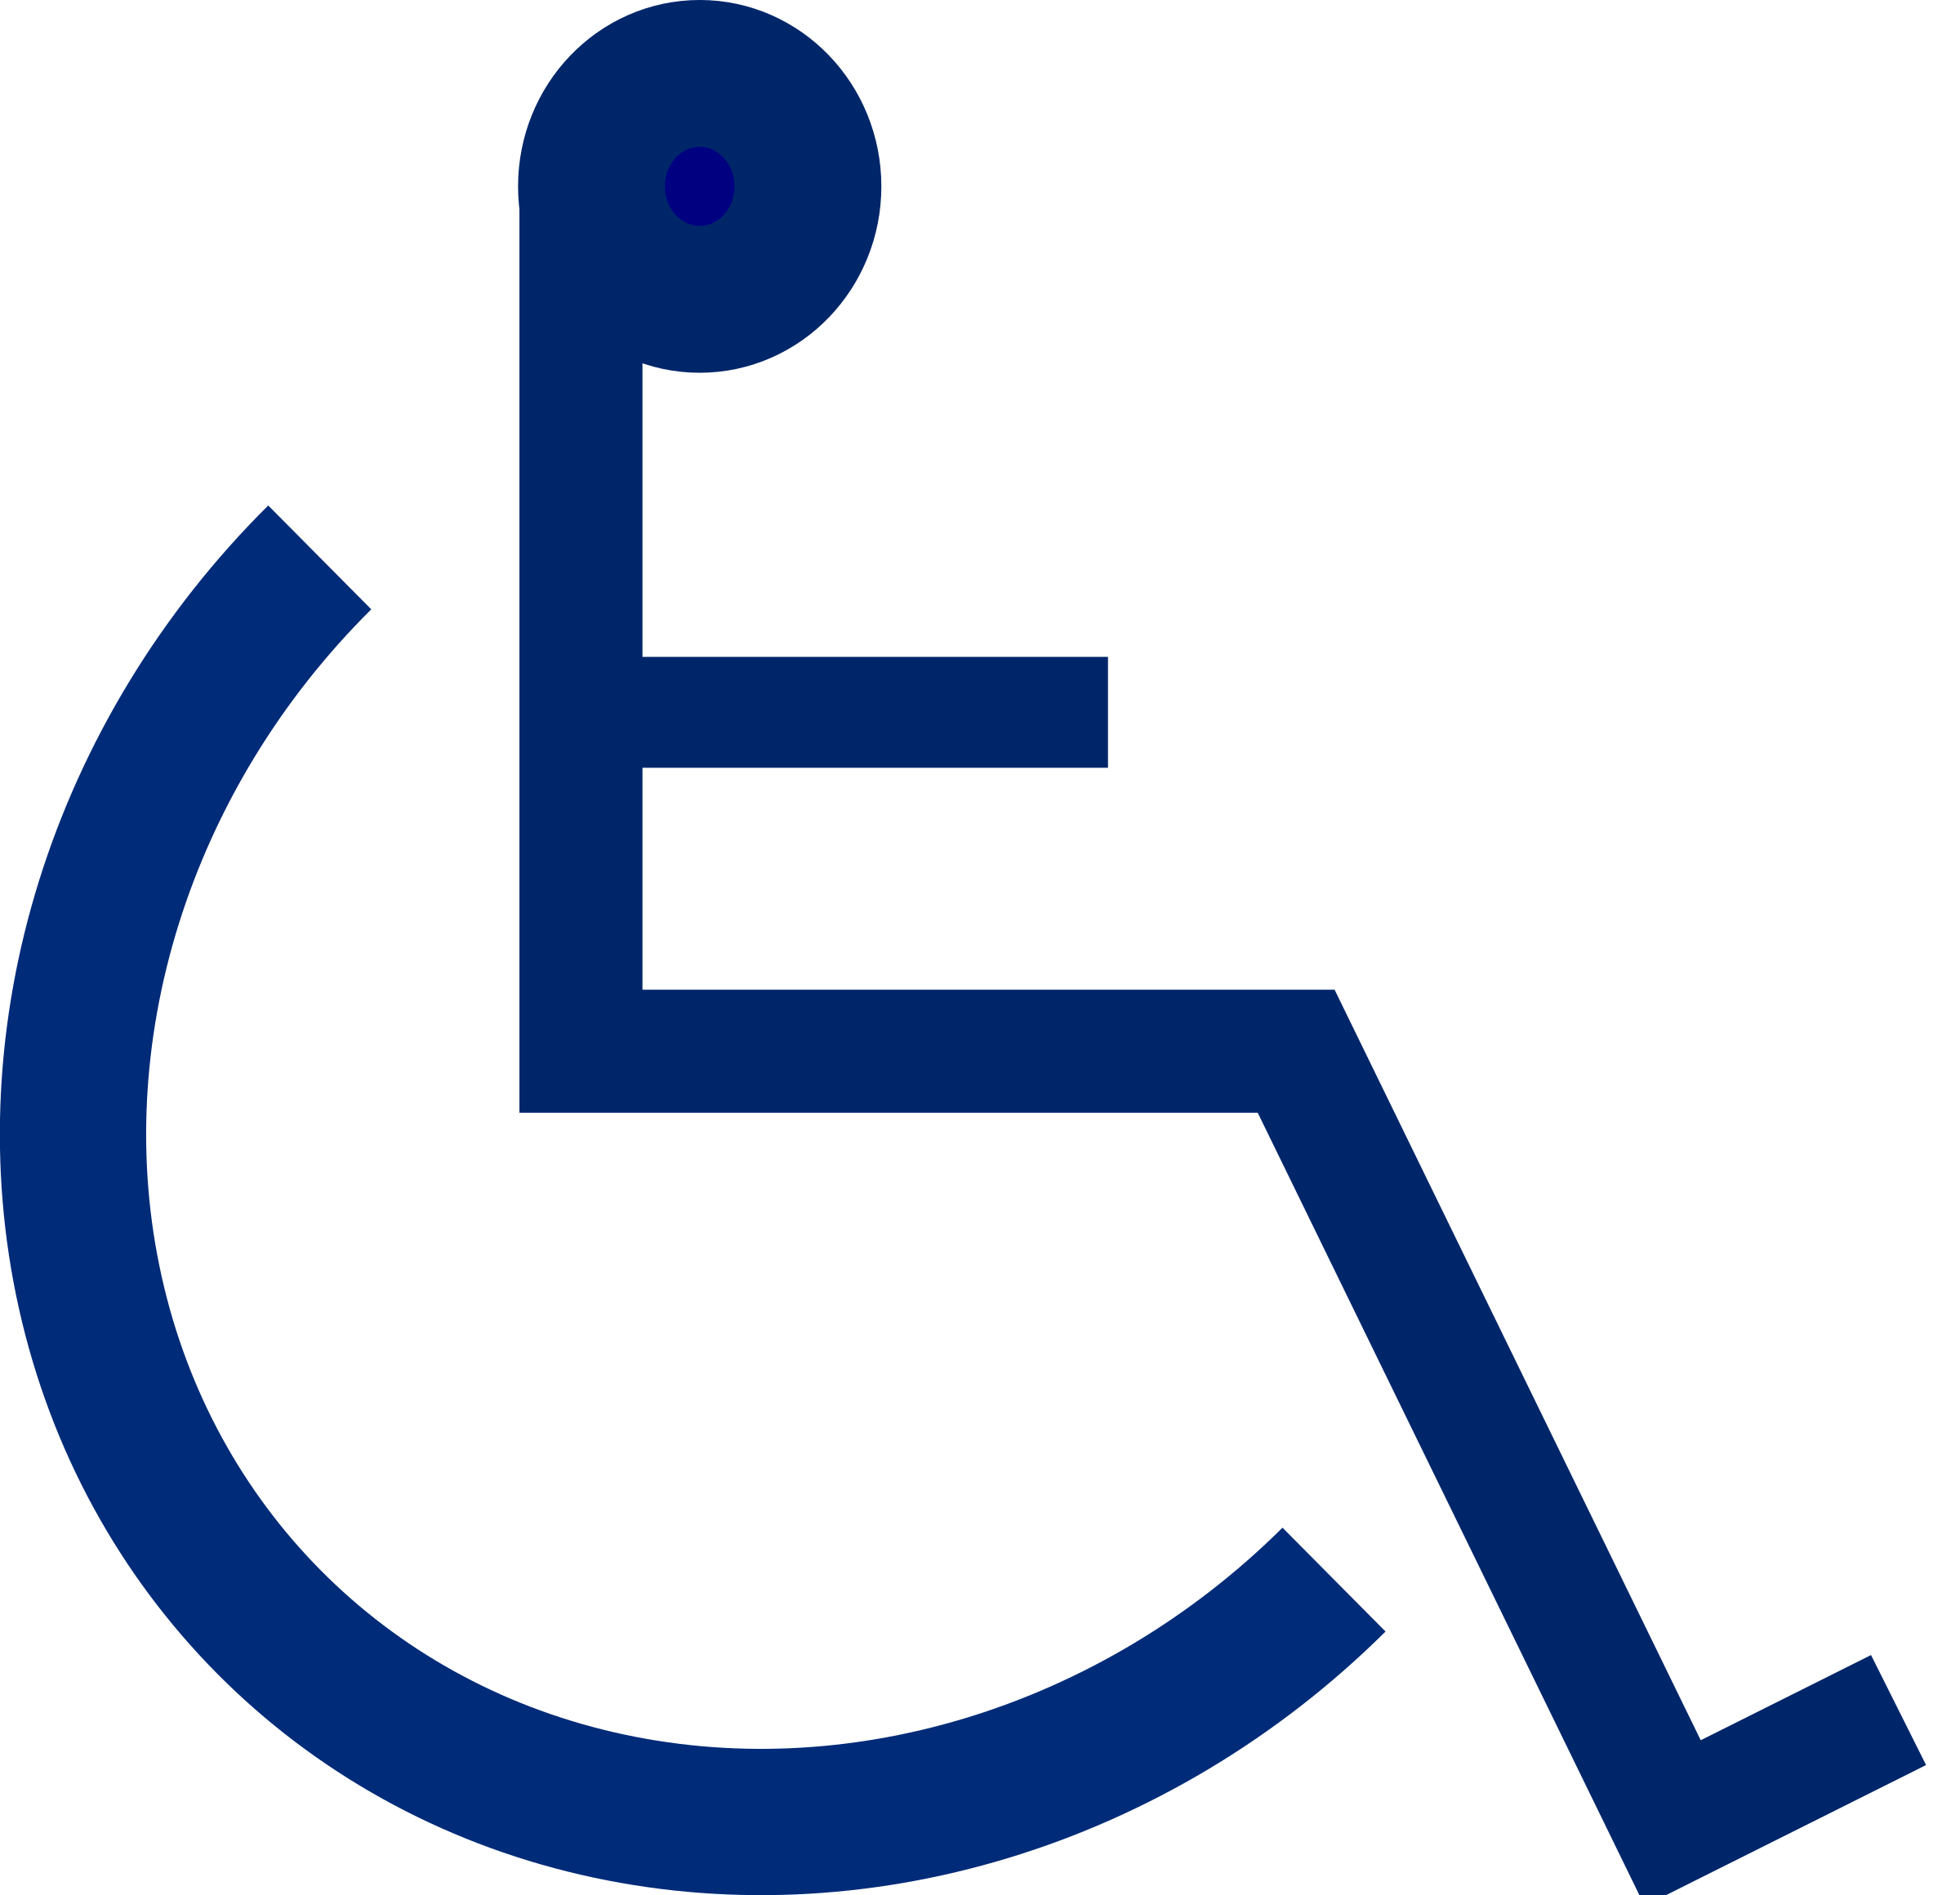 WheelChair-Sign by schoolfreeware